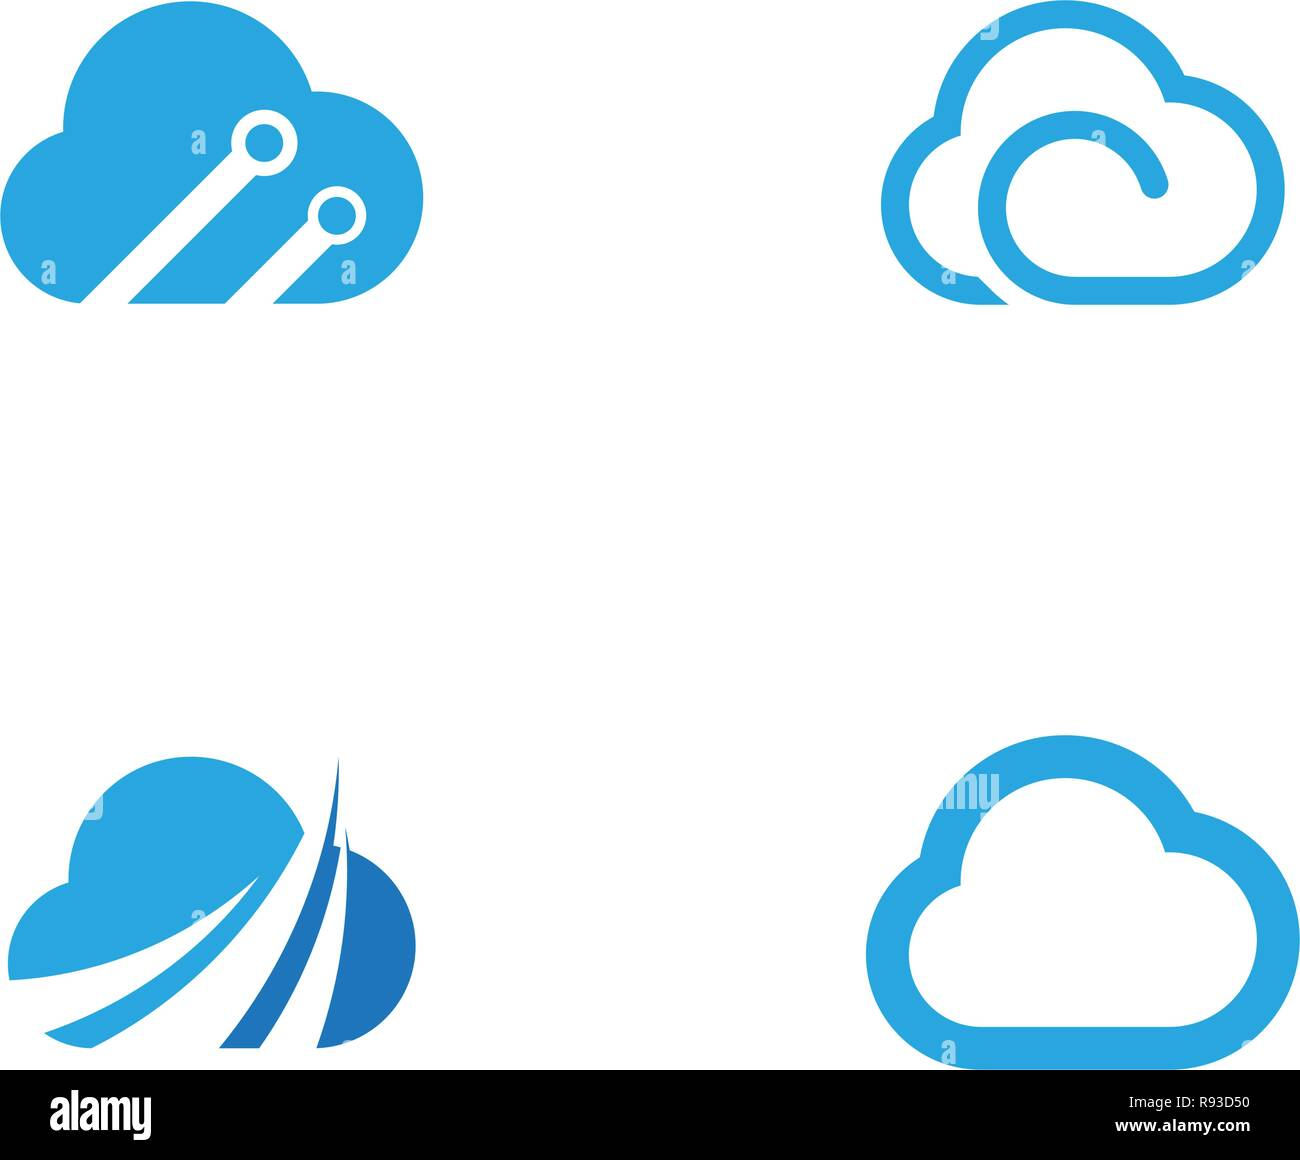 Cloud template vector icon illustration design - Stock Image